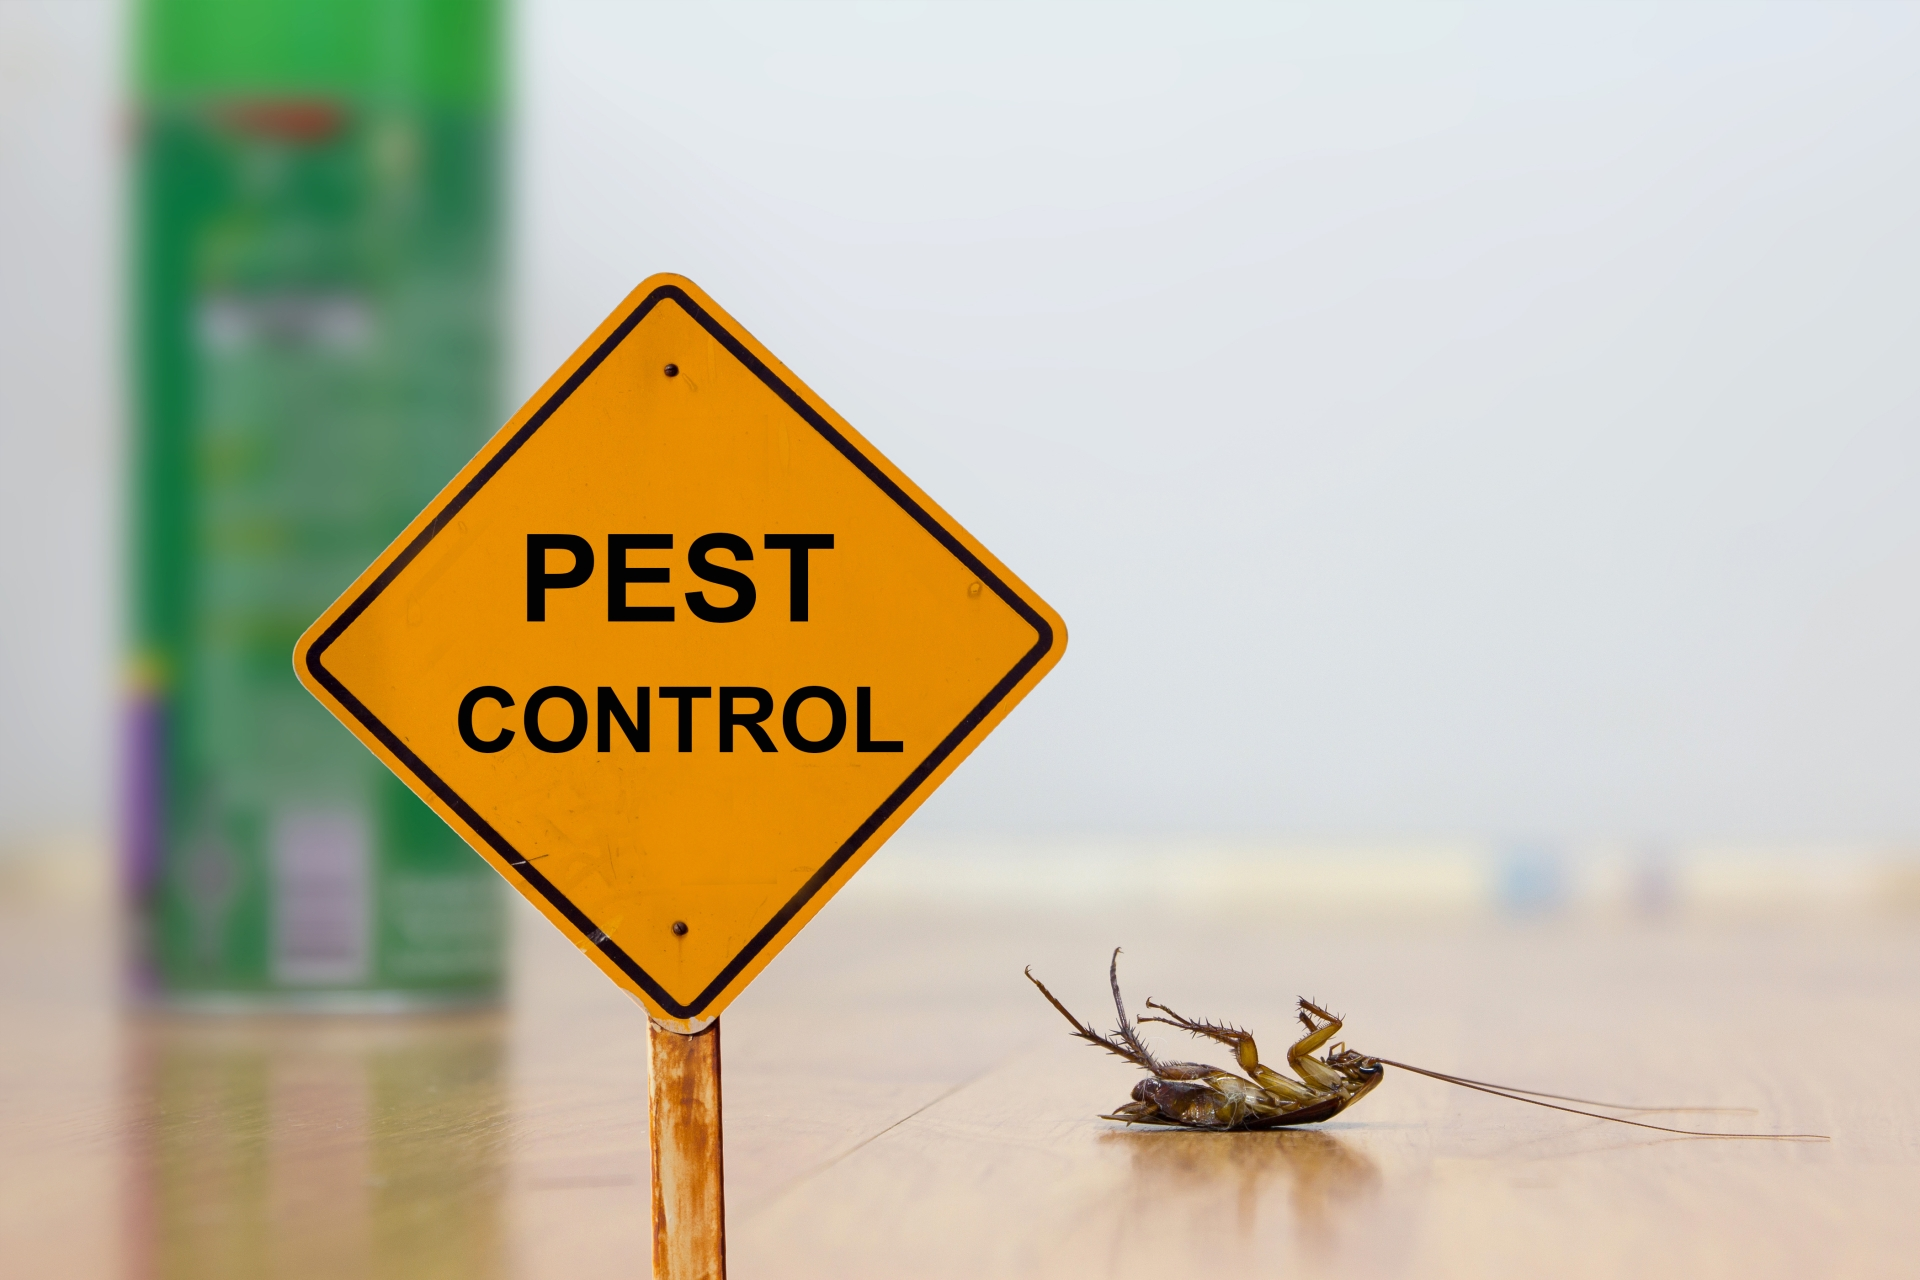 24 Hour Pest Control, Pest Control in Orpington, Chelsfield, Downe, BR6. Call Now 020 8166 9746